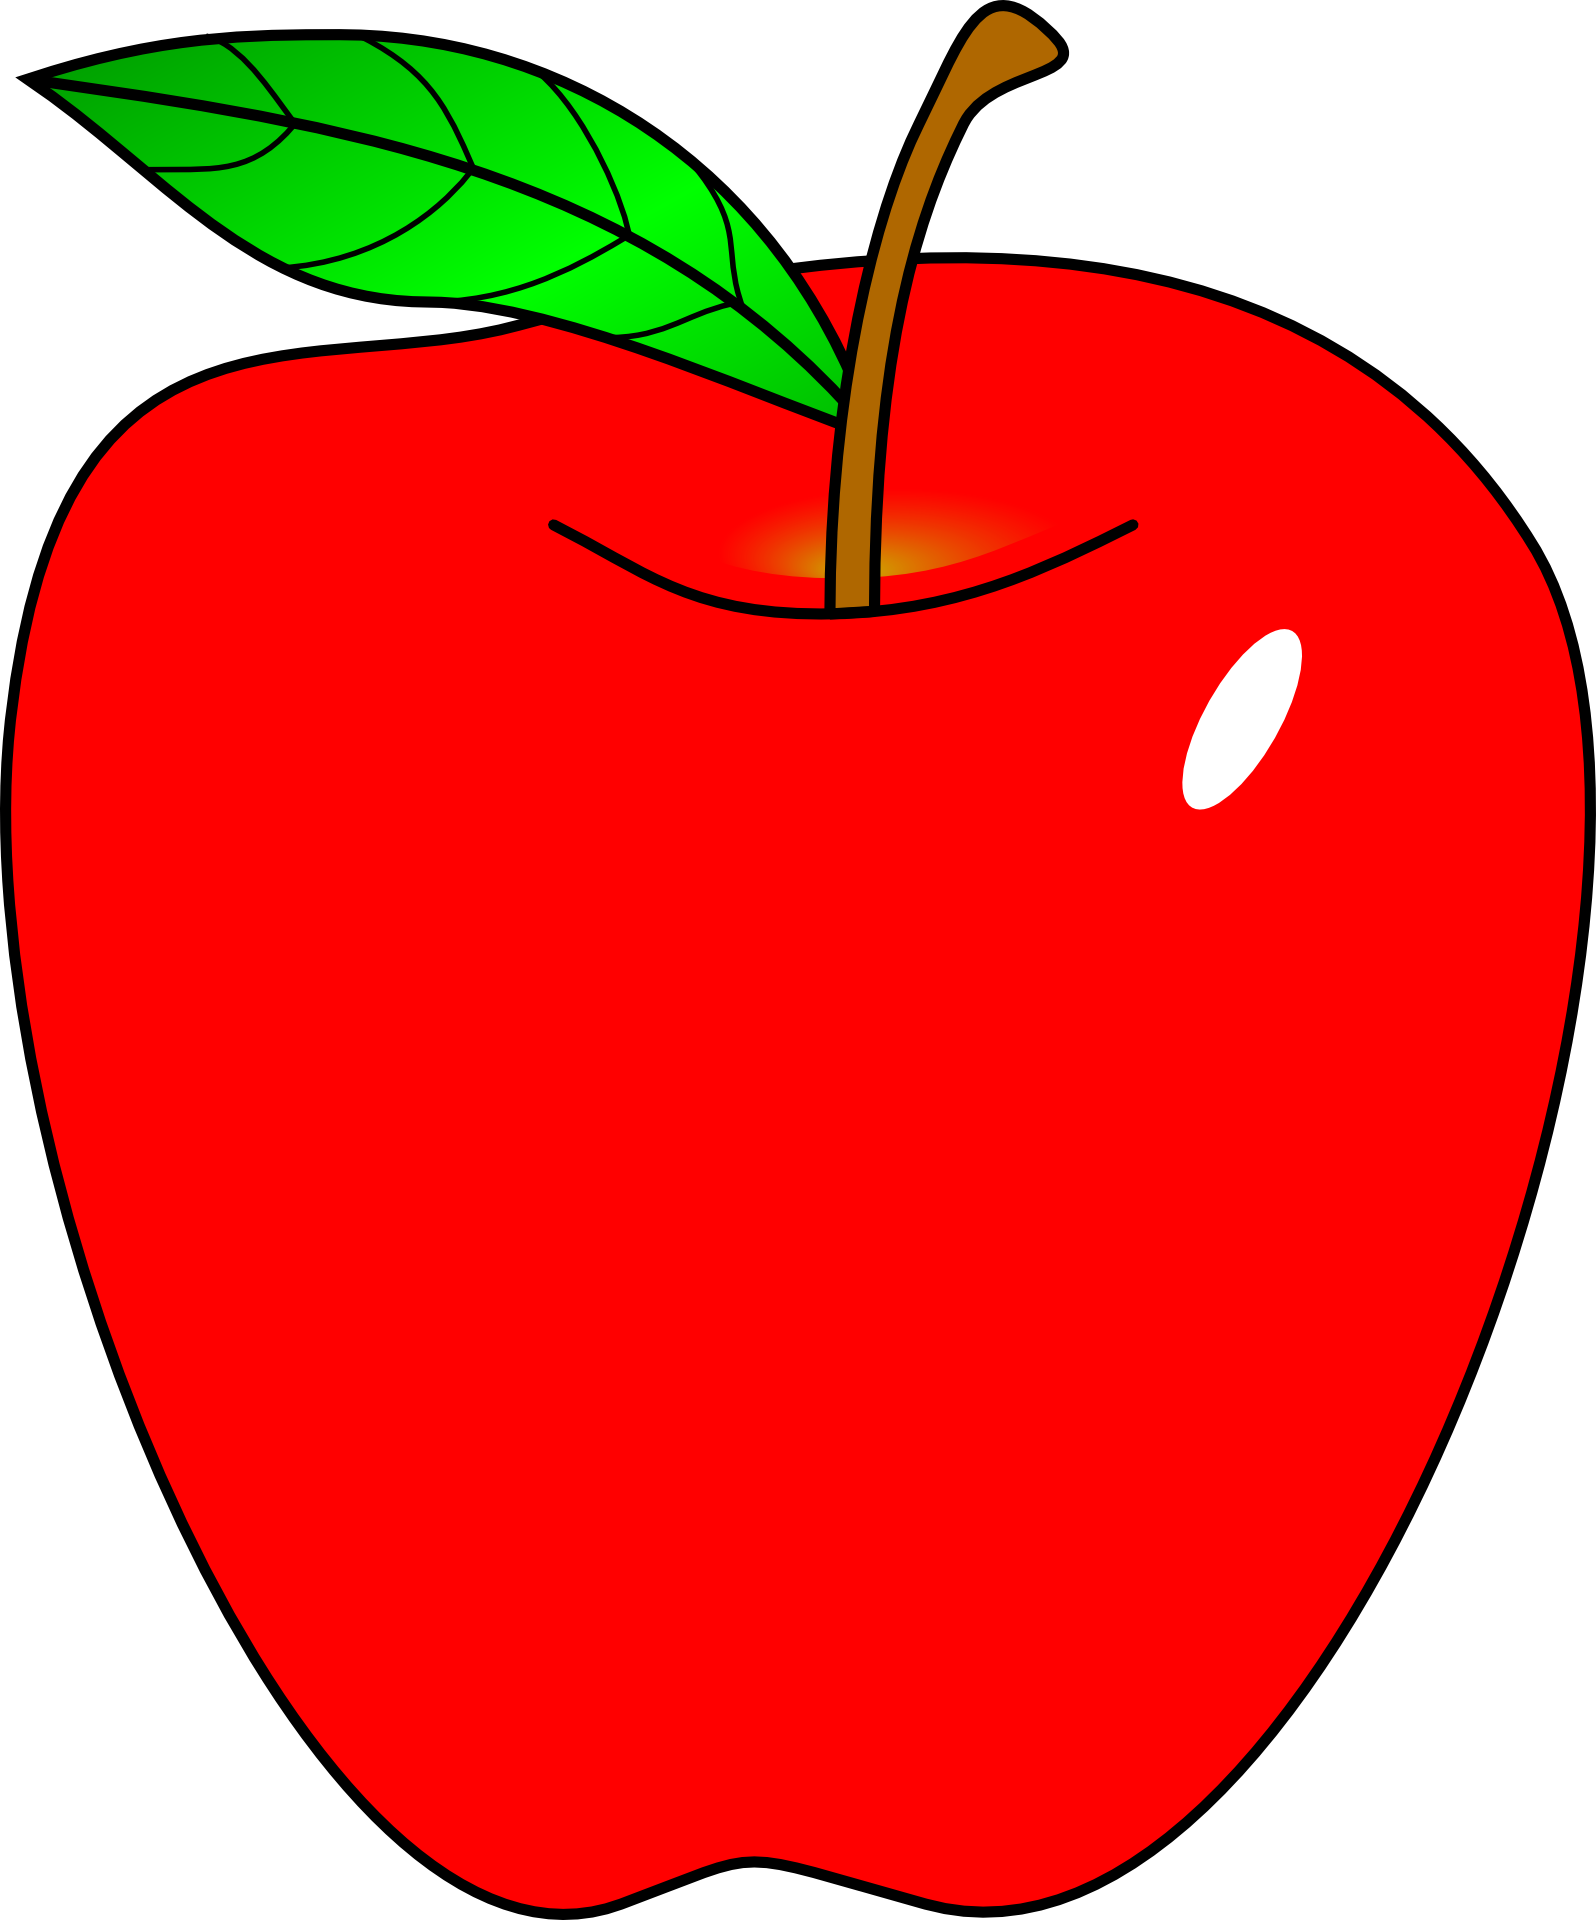 Free clipart apple butter free Apple Free content Teacher Clip art - Cartoon Red Apple 1596*1920 ... free